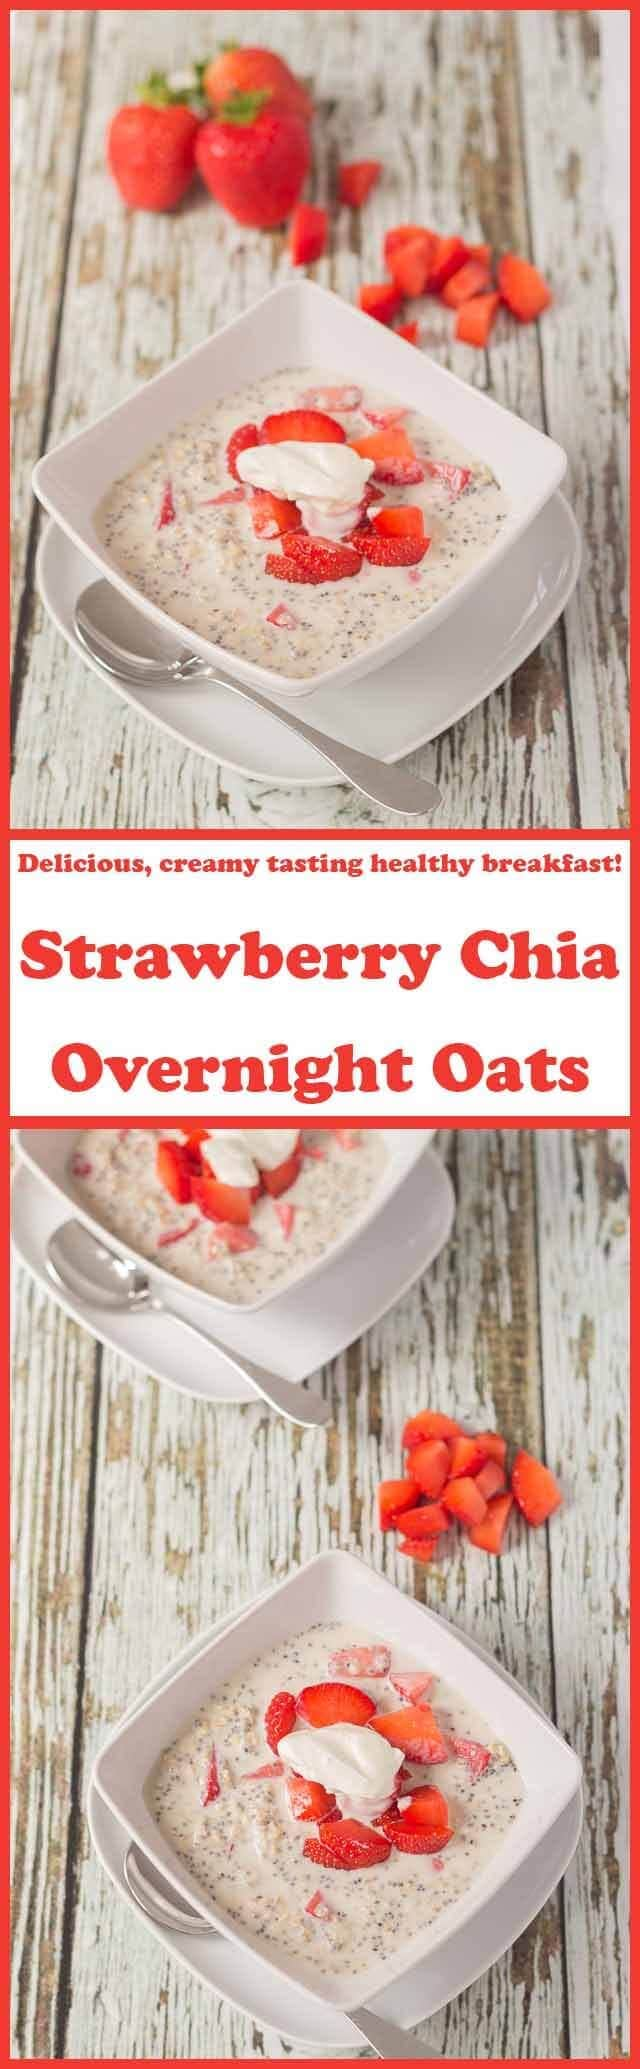 Strawberry chia overnight oats are a delicious, creamy tasting and healthy breakfast option. This sweet tasting, nutritious breakfast will ensure you have a great start to the day and a filling one too!